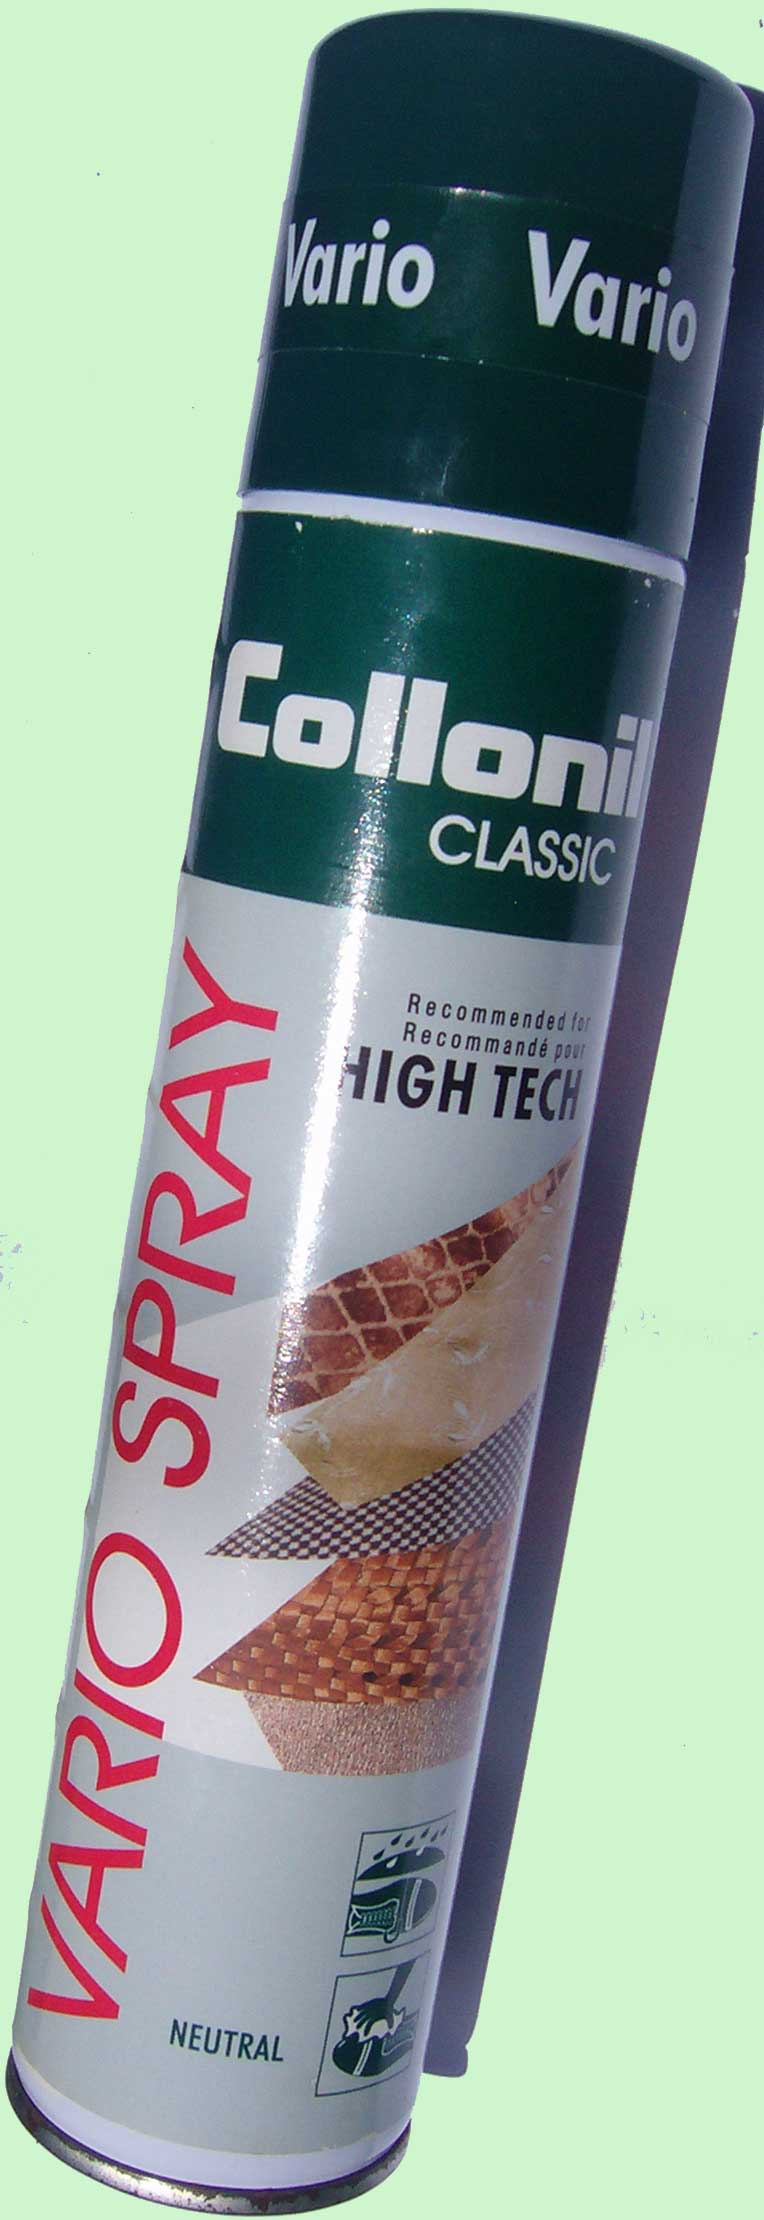 Waterproofing Spray for leathers and textiles